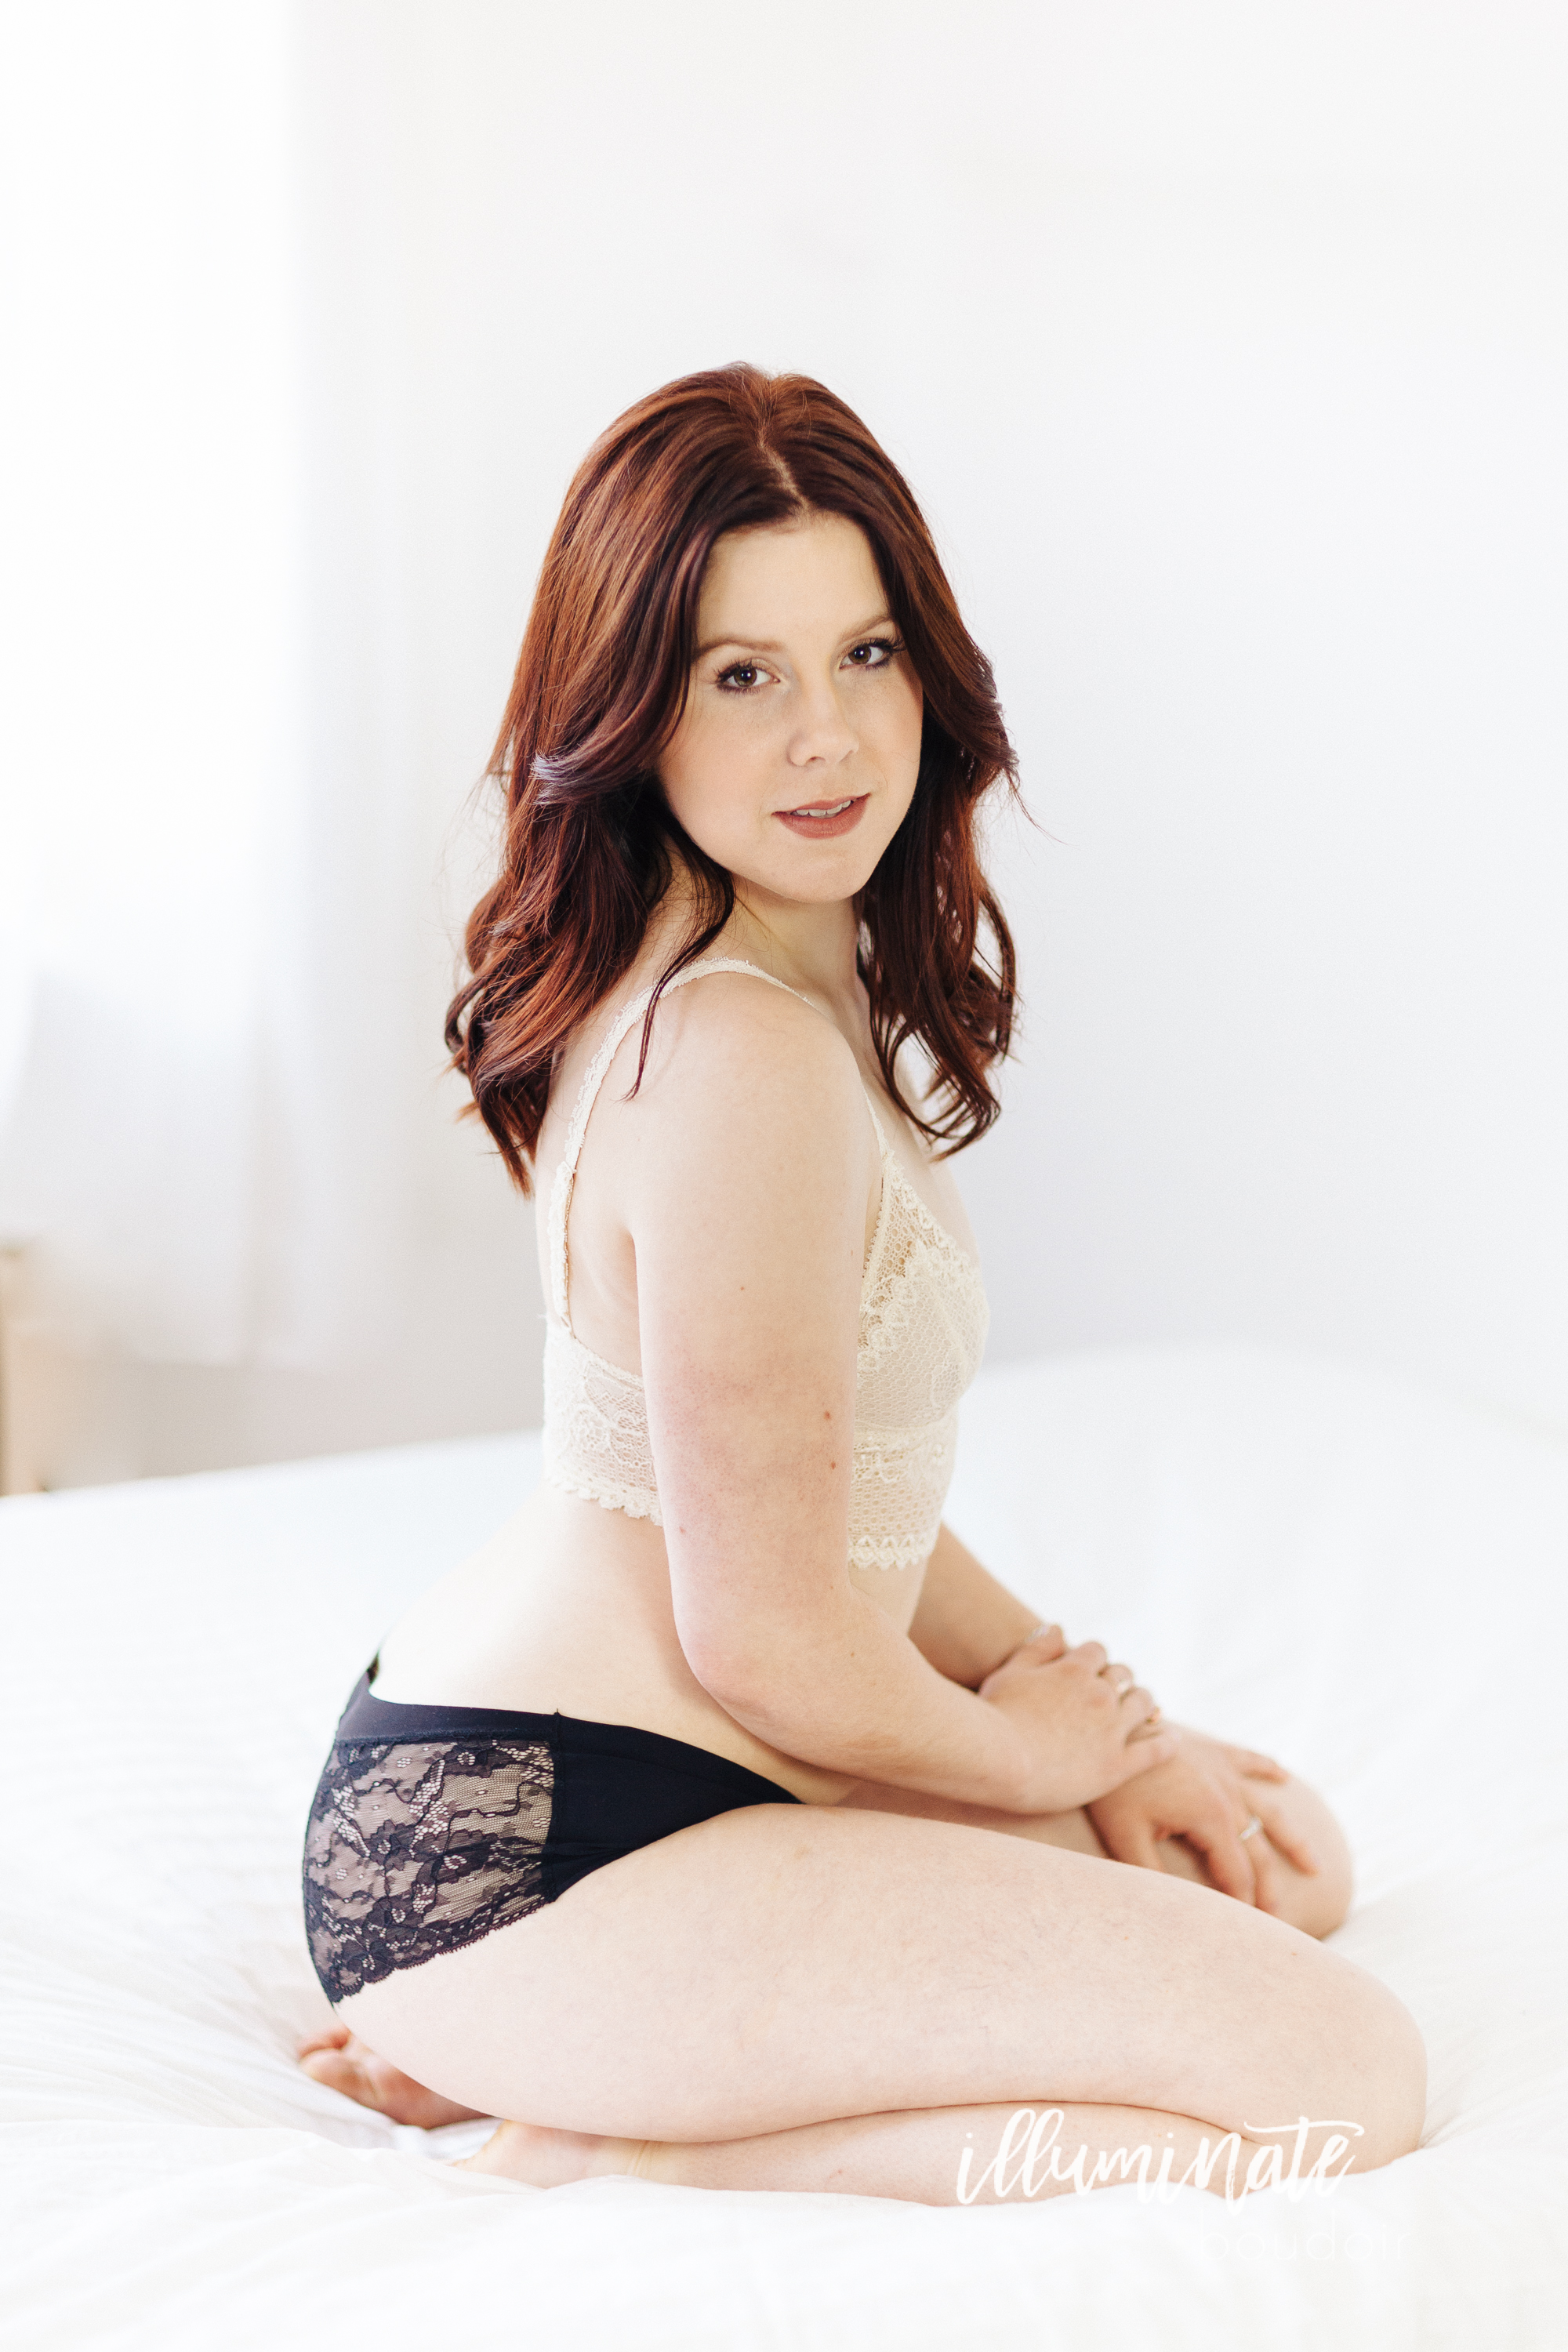 Minneapolis Bridal Boudoir Portrait Outfit Inspiration